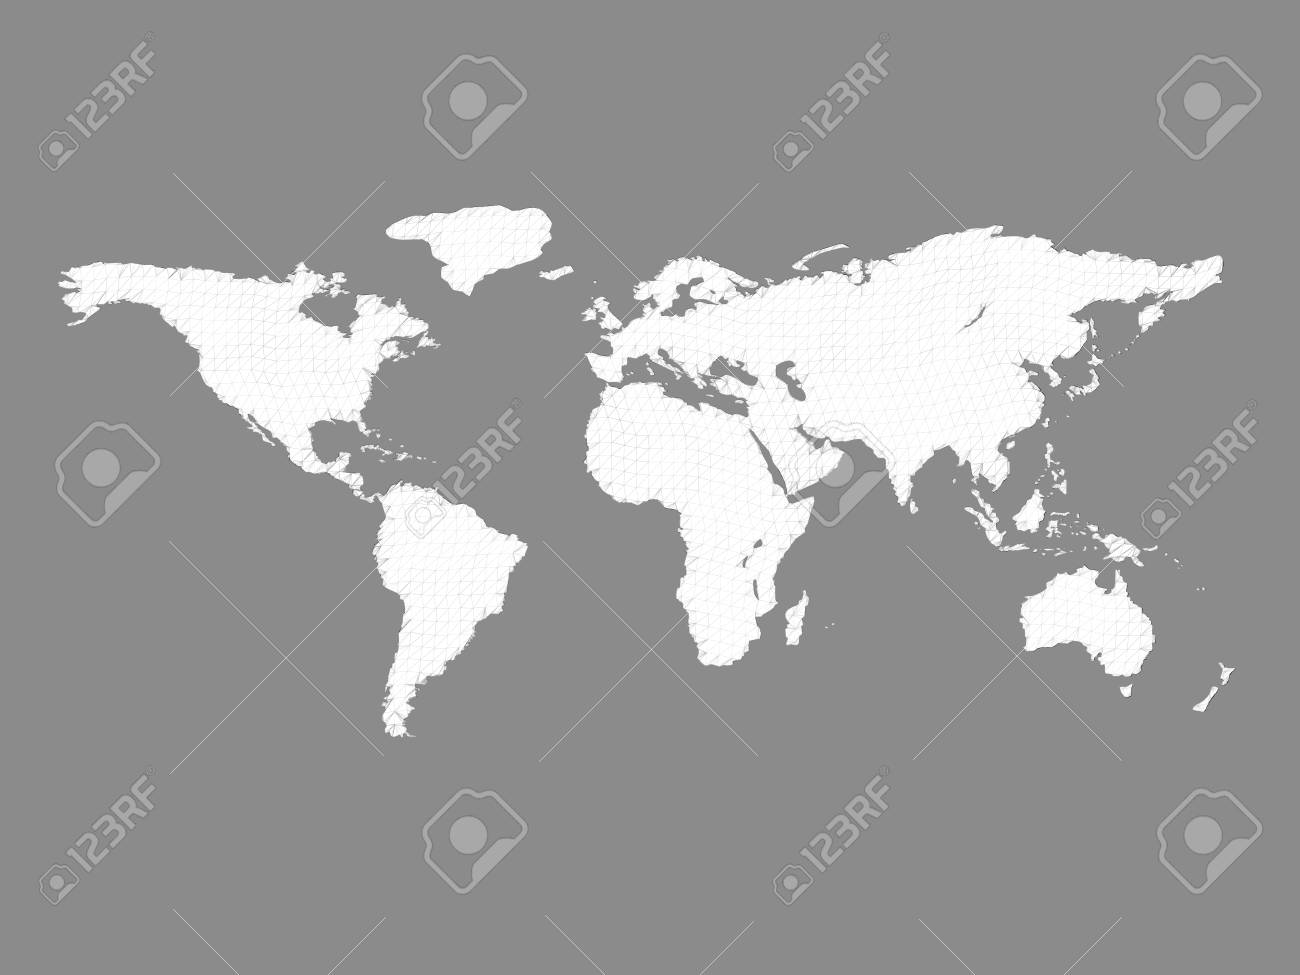 Polygonal world map vector illustration 3d the map is covered polygonal world map vector illustration 3d the map is covered with a geometric gumiabroncs Images